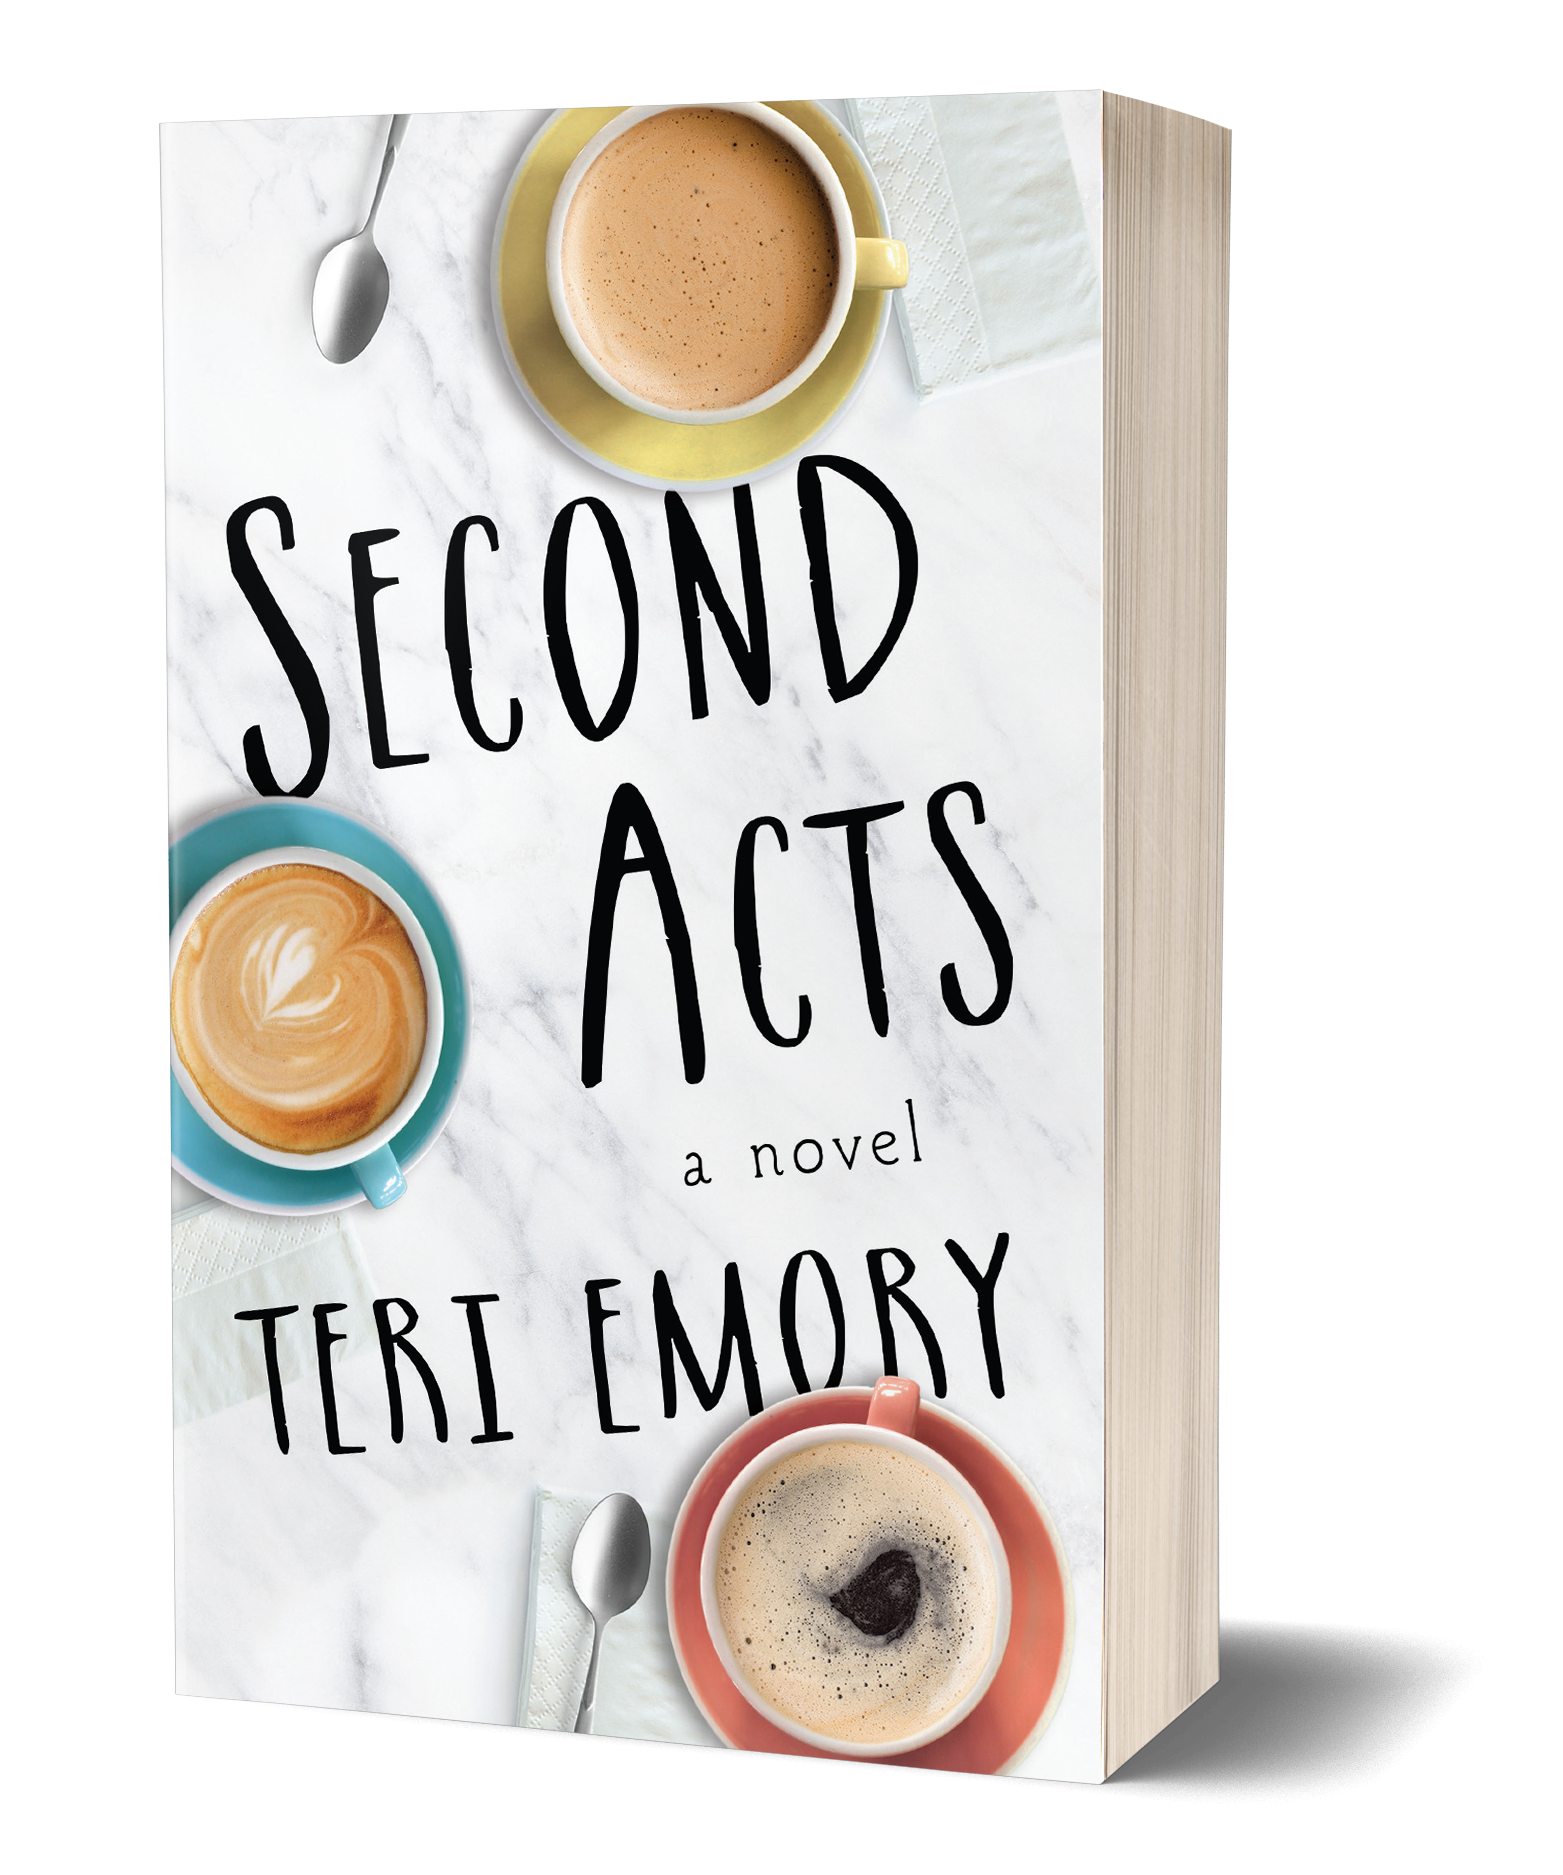 Second Acts book cover, Marble counter top, three different colored mugs of tea or coffee with spoons and napkins